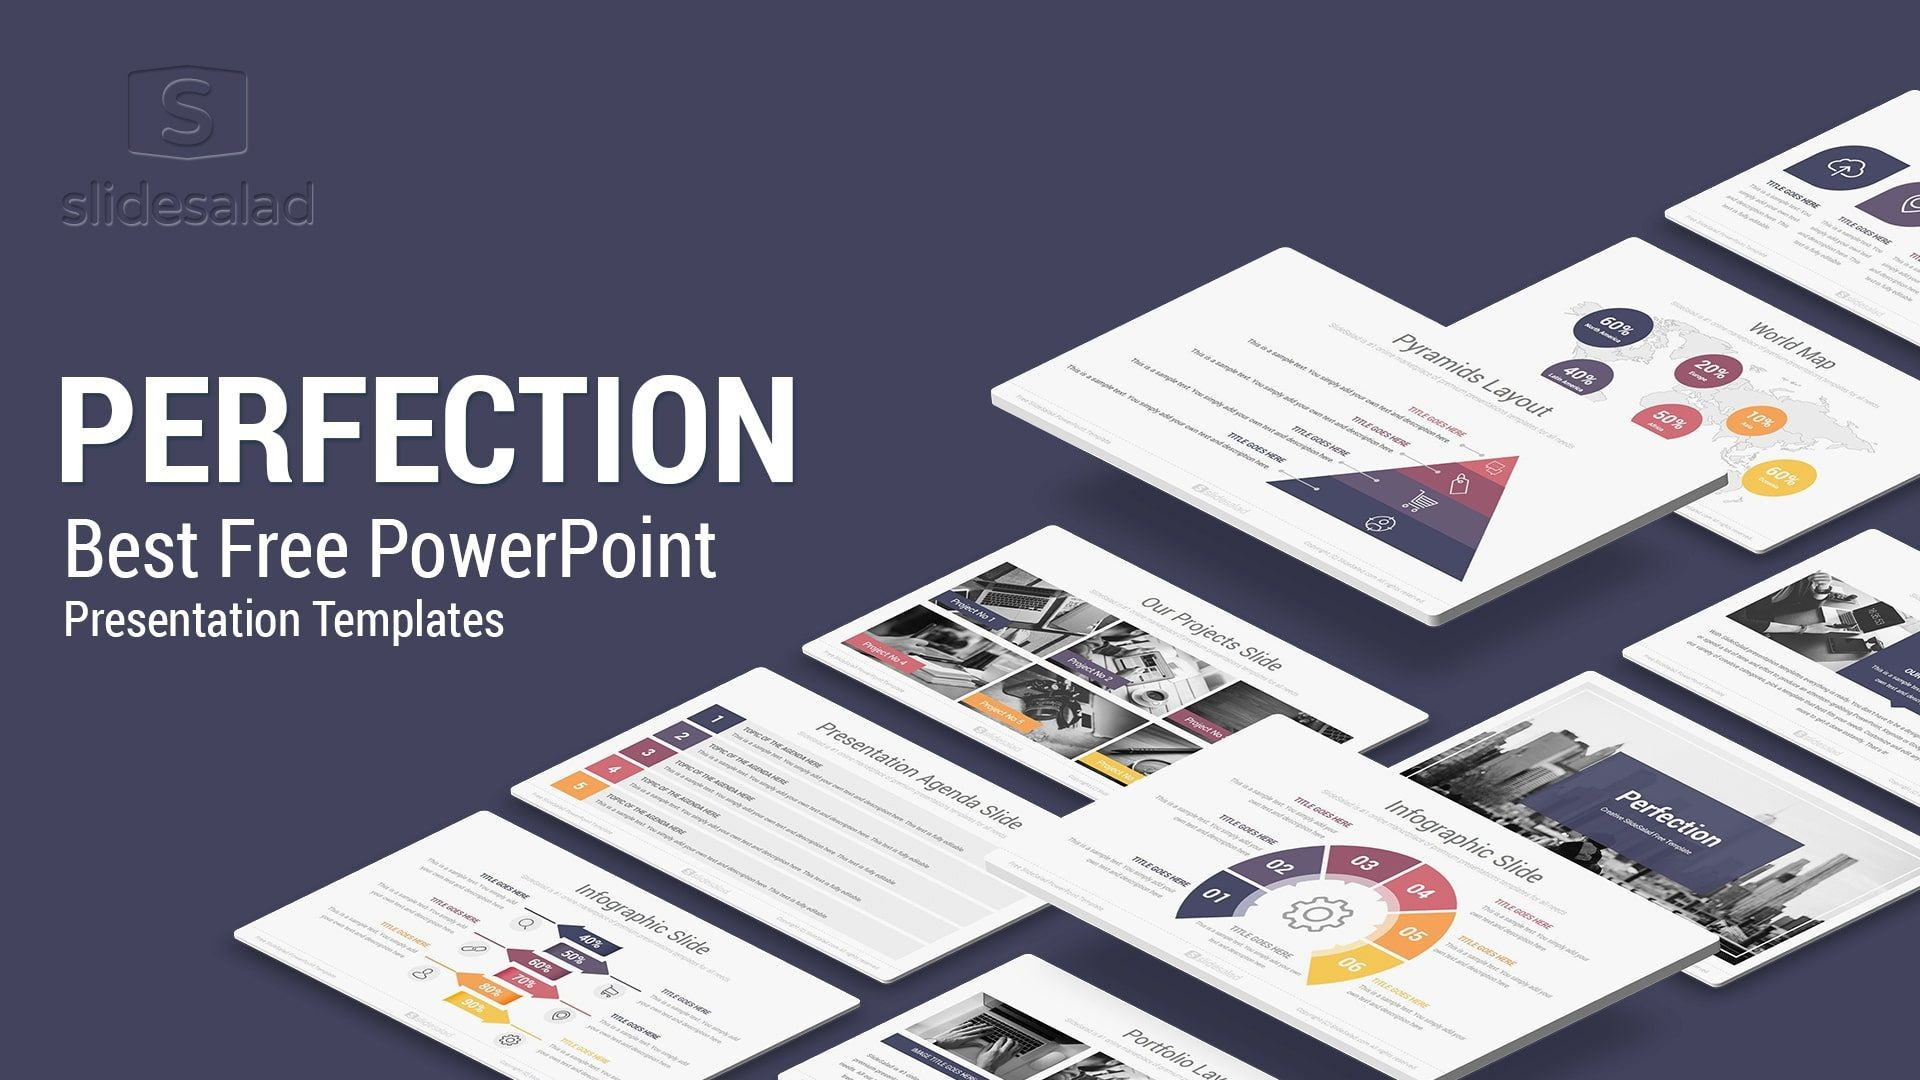 001 Amazing Ppt Template For Seminar Presentation Free Download Picture 1920